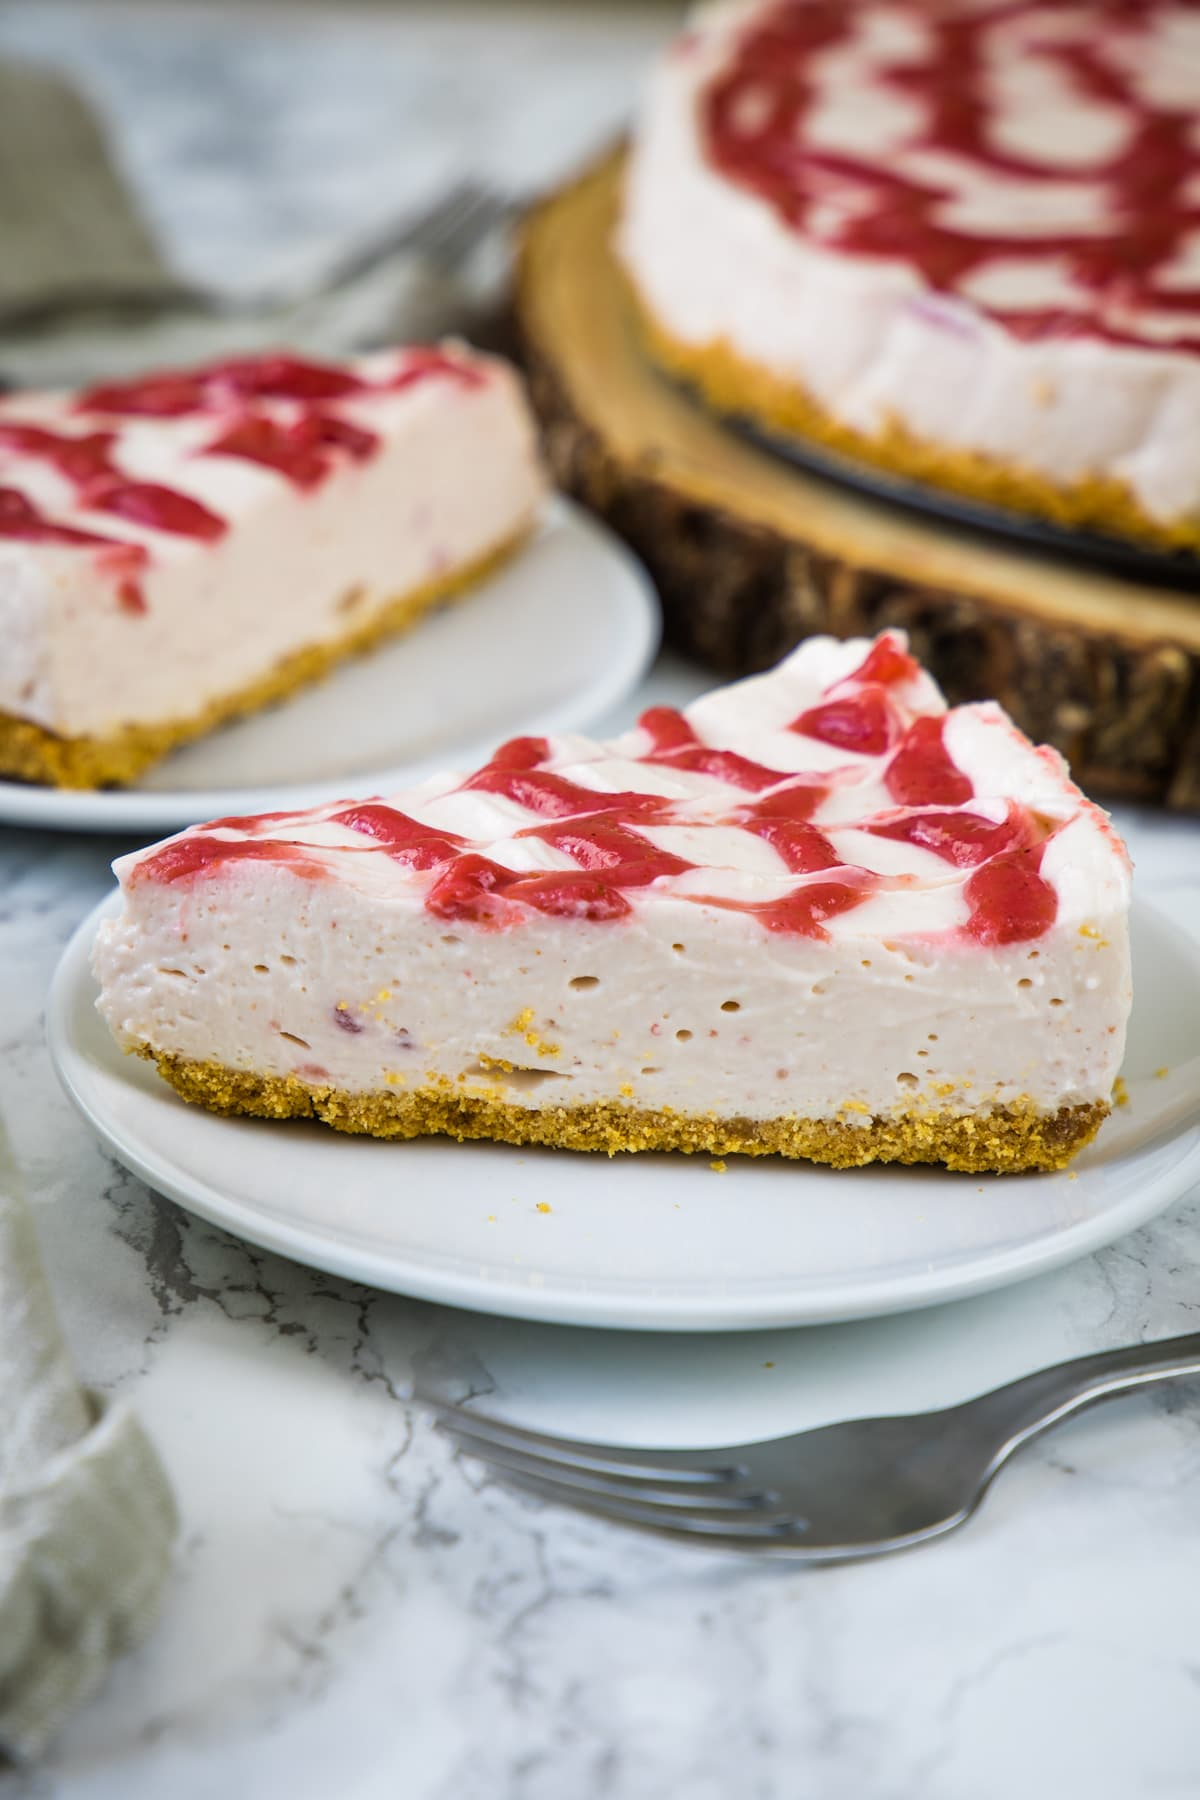 A close up of no bake strawberry cheesecake slice served on a plate with fork on side.